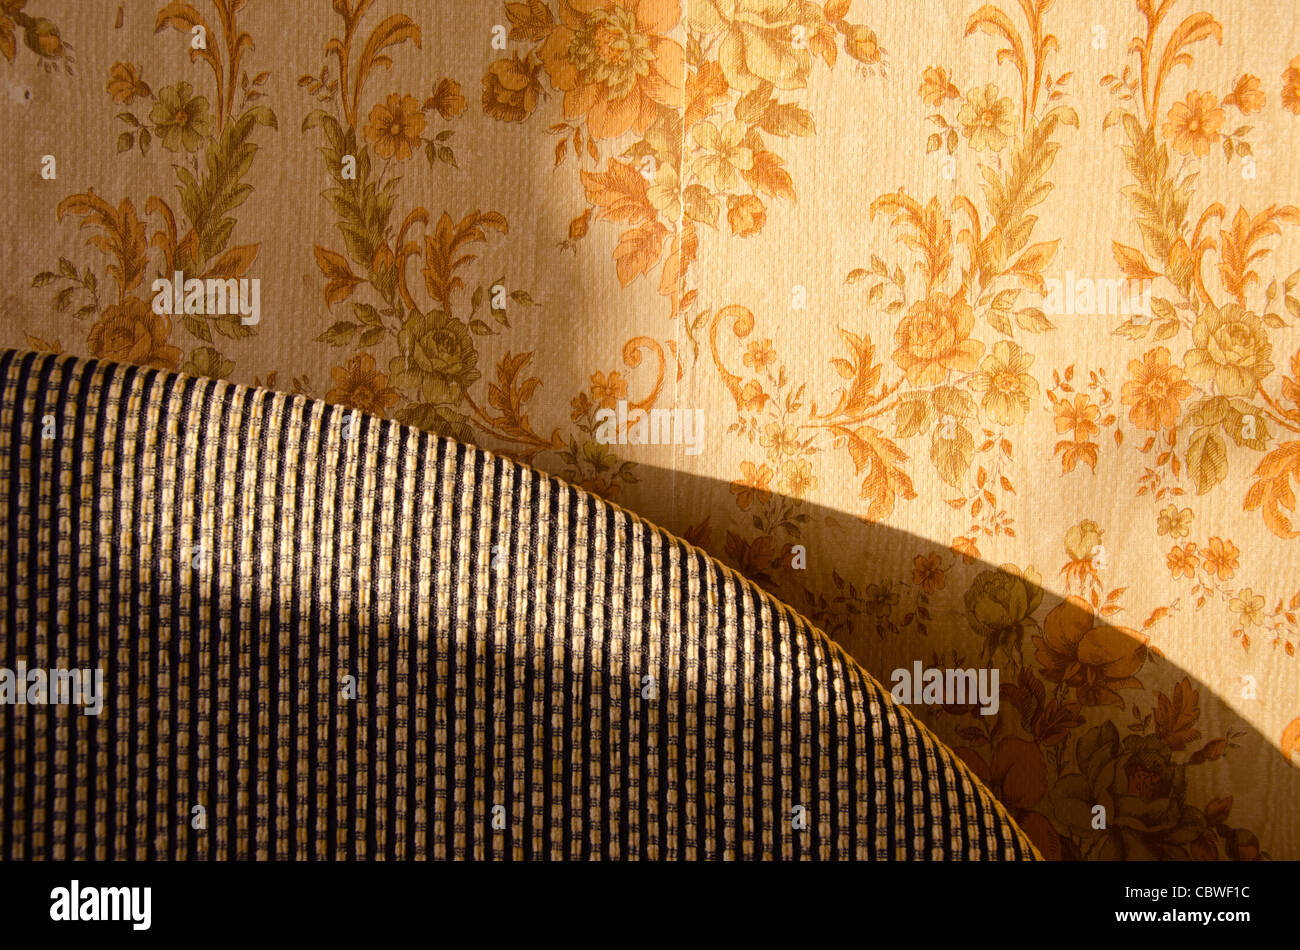 Old Home Interior Design Part Of Bed And Wall With Wallpaper Stock Photo Alamy